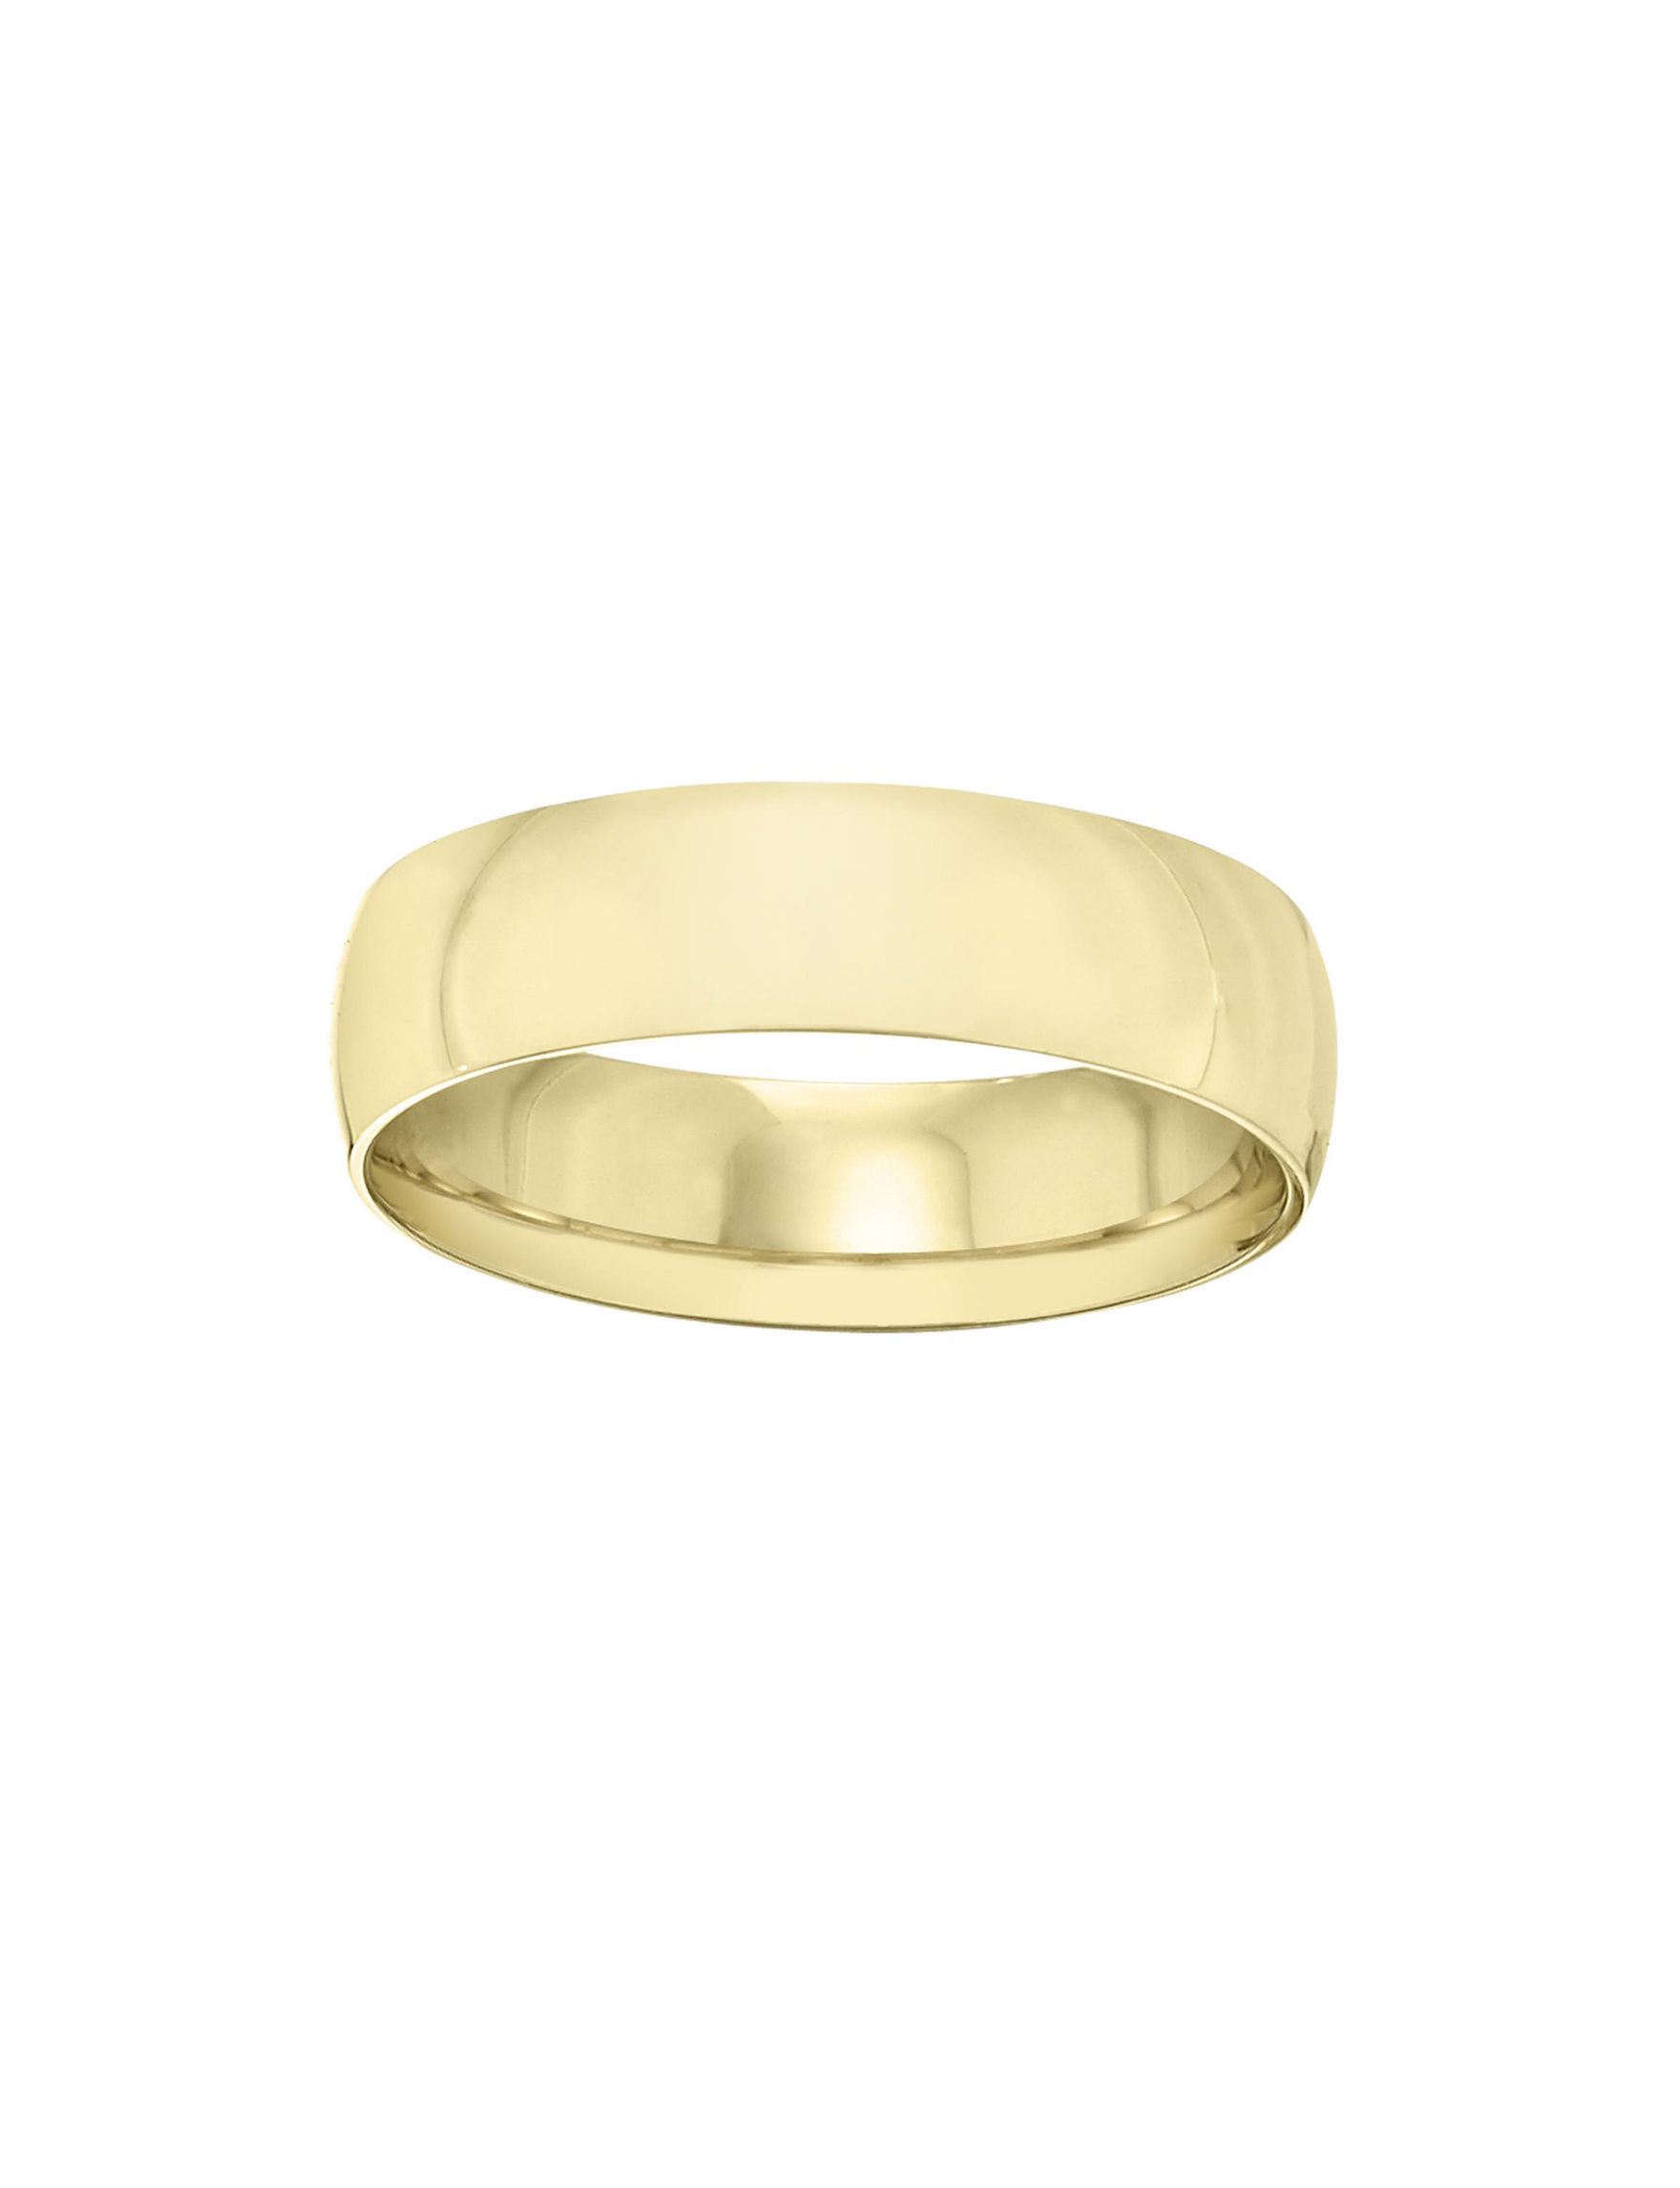 Dilusso Jewelers Gold Rings Fine Jewelry